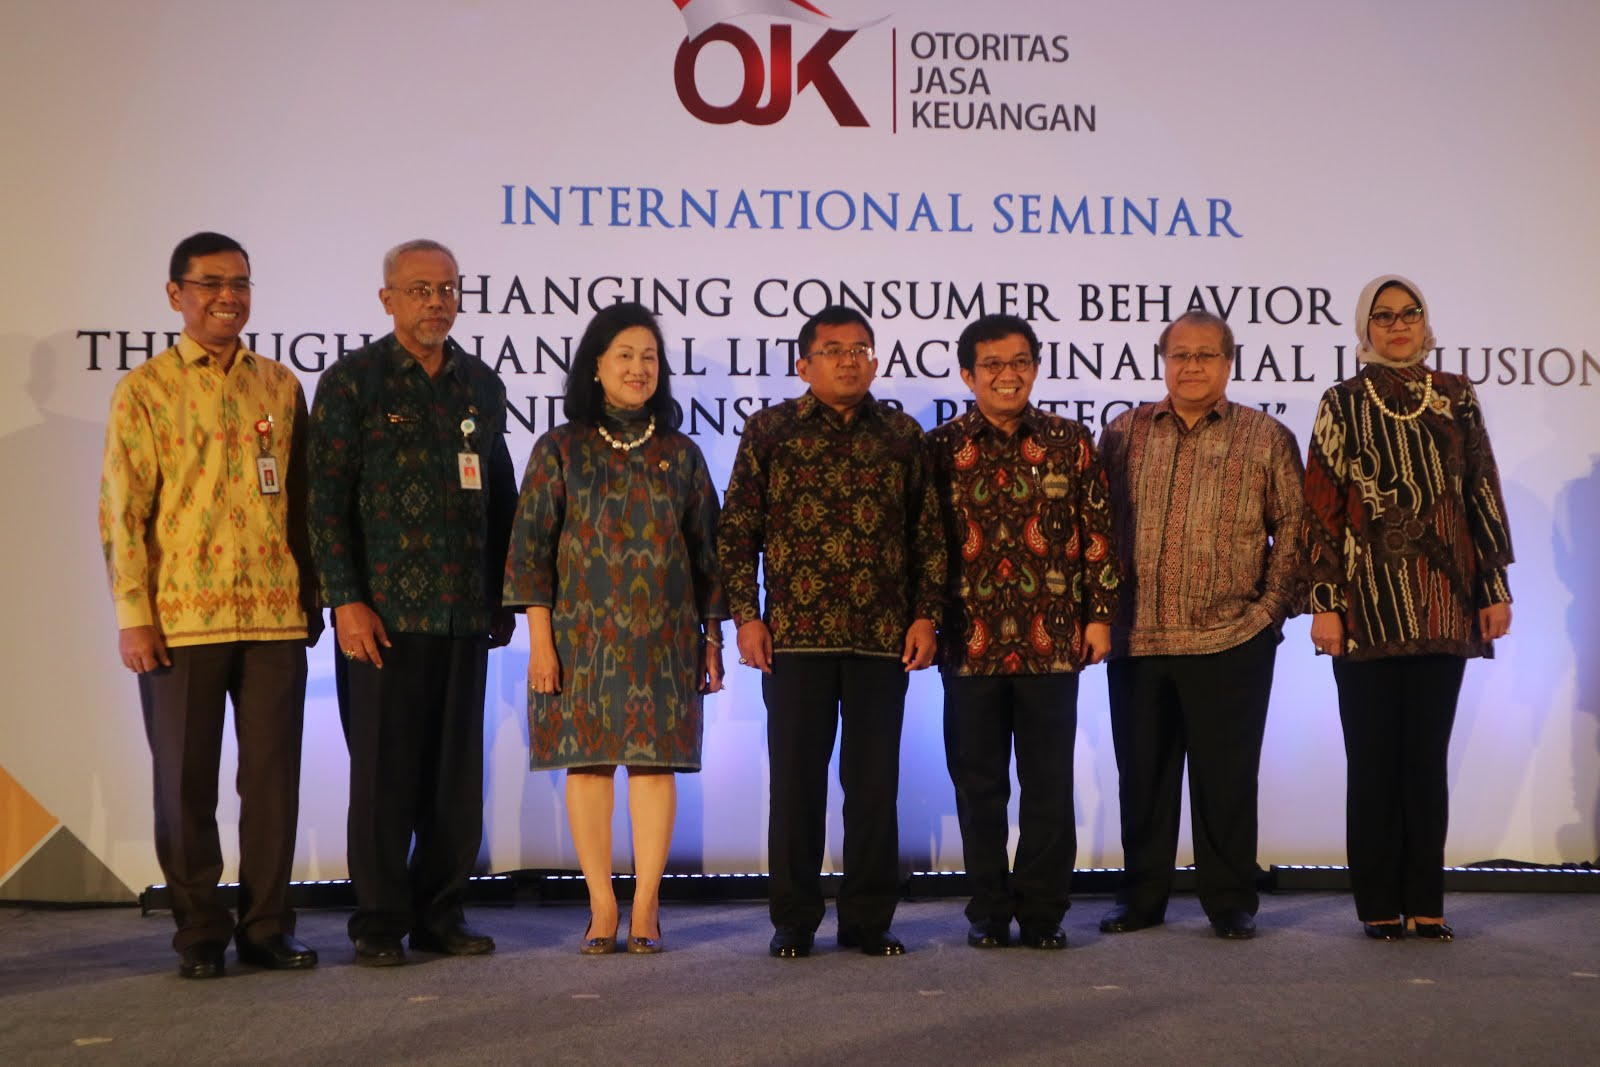 OJK International Workshop on Financial Inclusion, Bali 4-5 May 2017